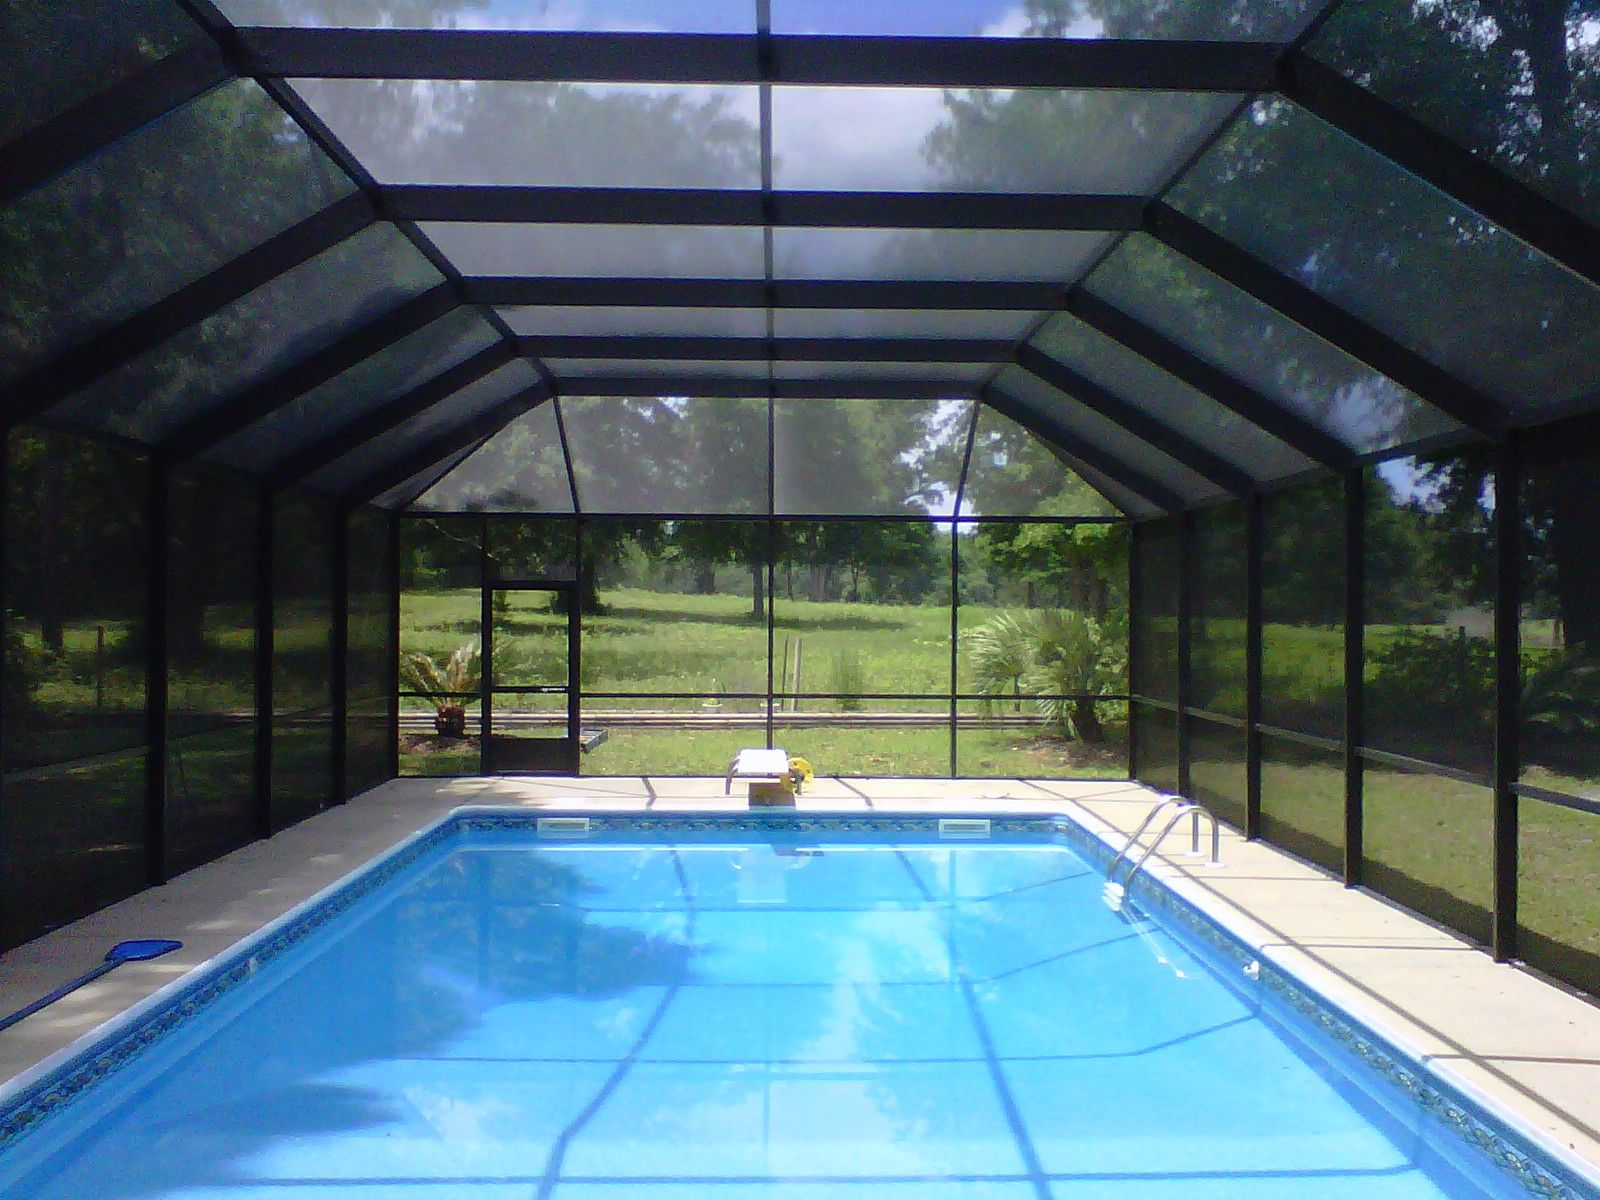 Florida Screened In Pools Swimming Pool Screen Enclosures Prices Pool Enclosures Florida Pool Pool Screen Enclosure